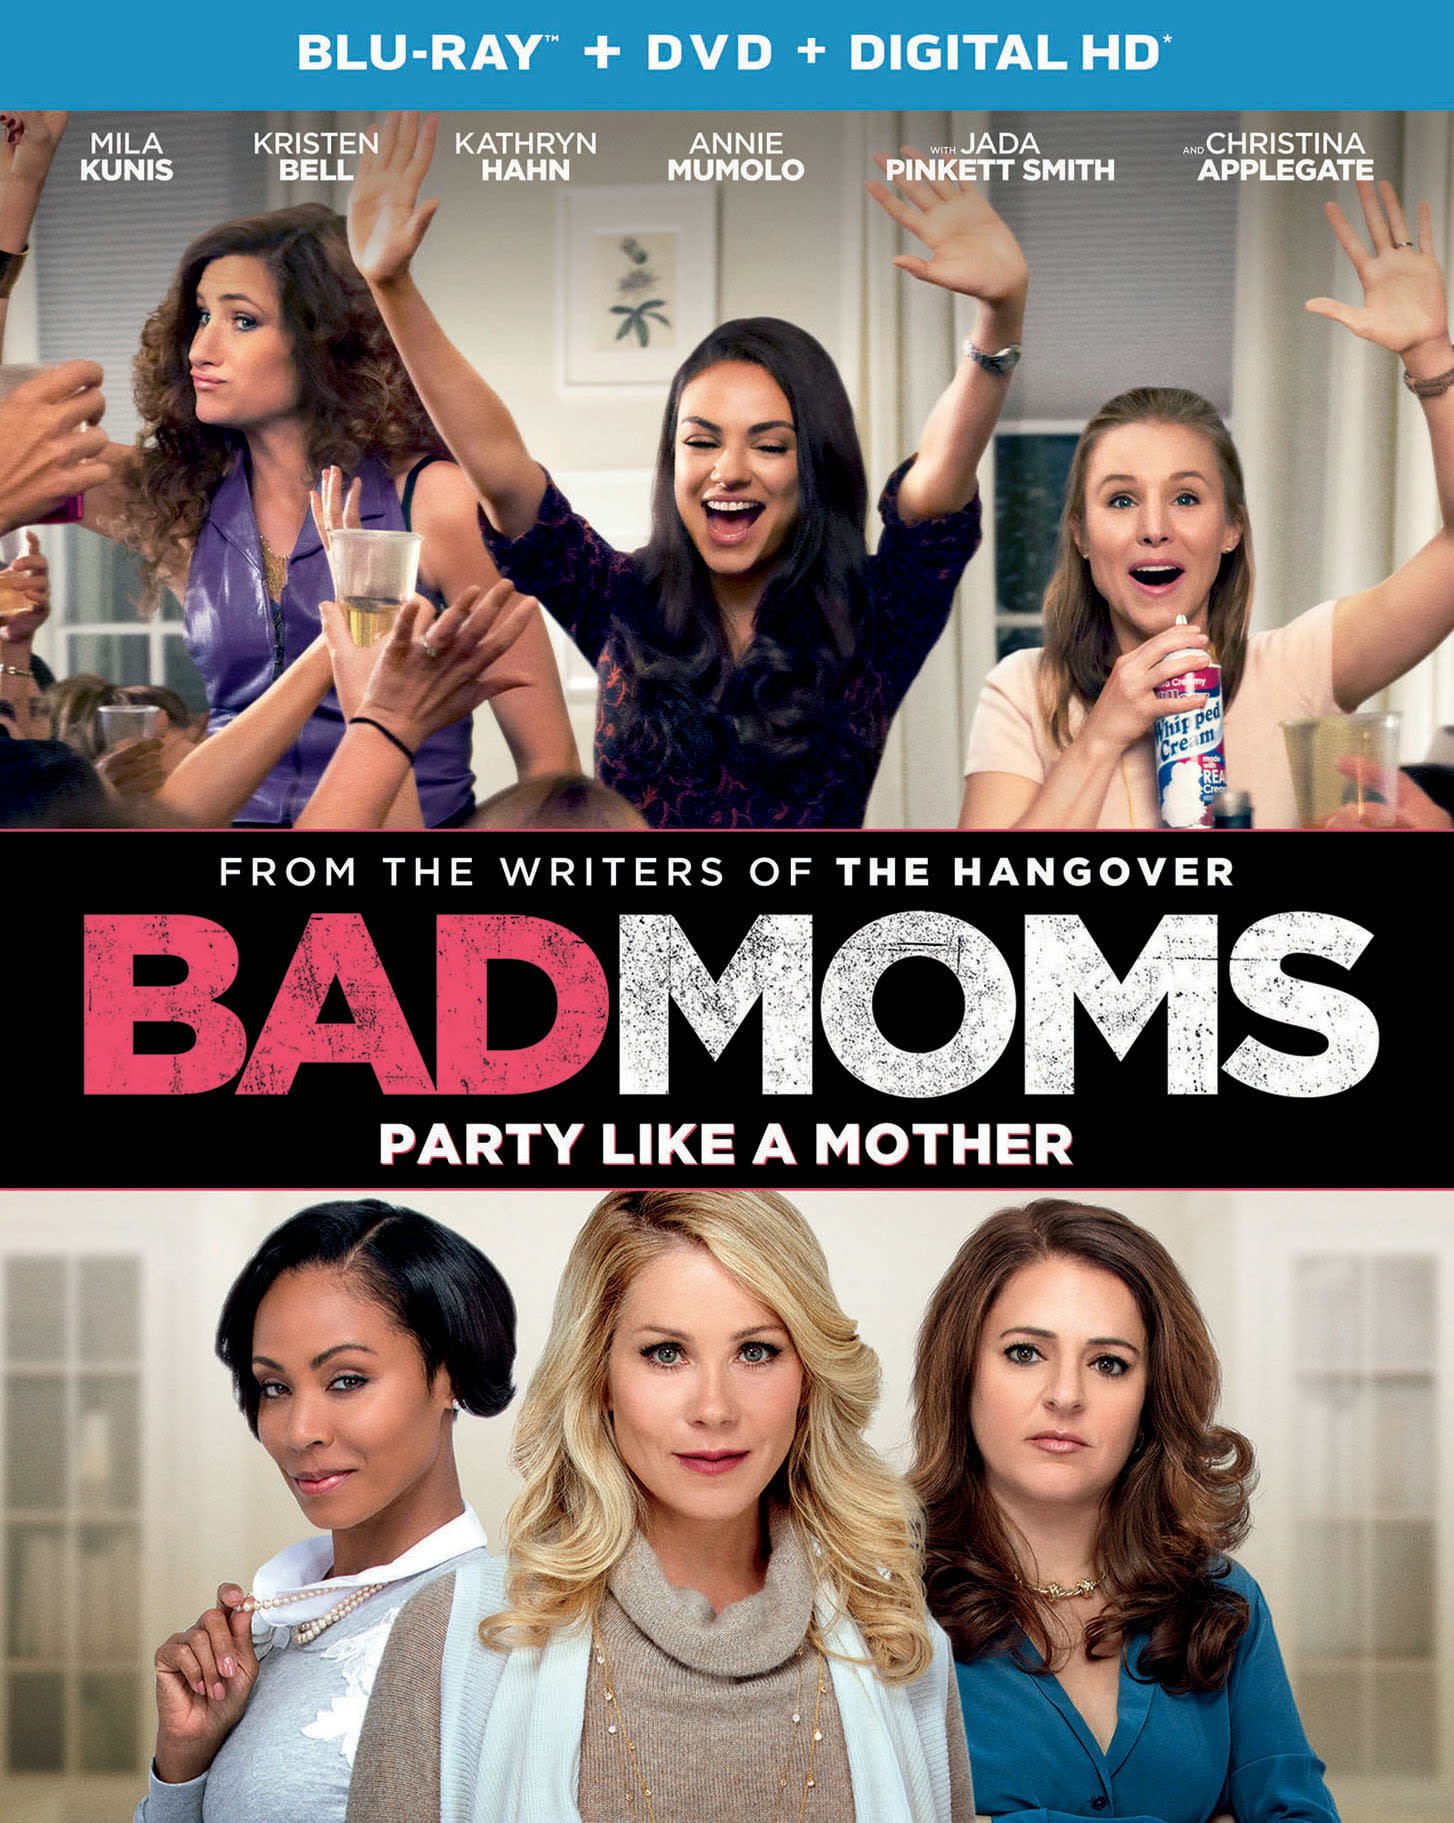 Bad Moms (DVD + Digital) [Blu-ray]